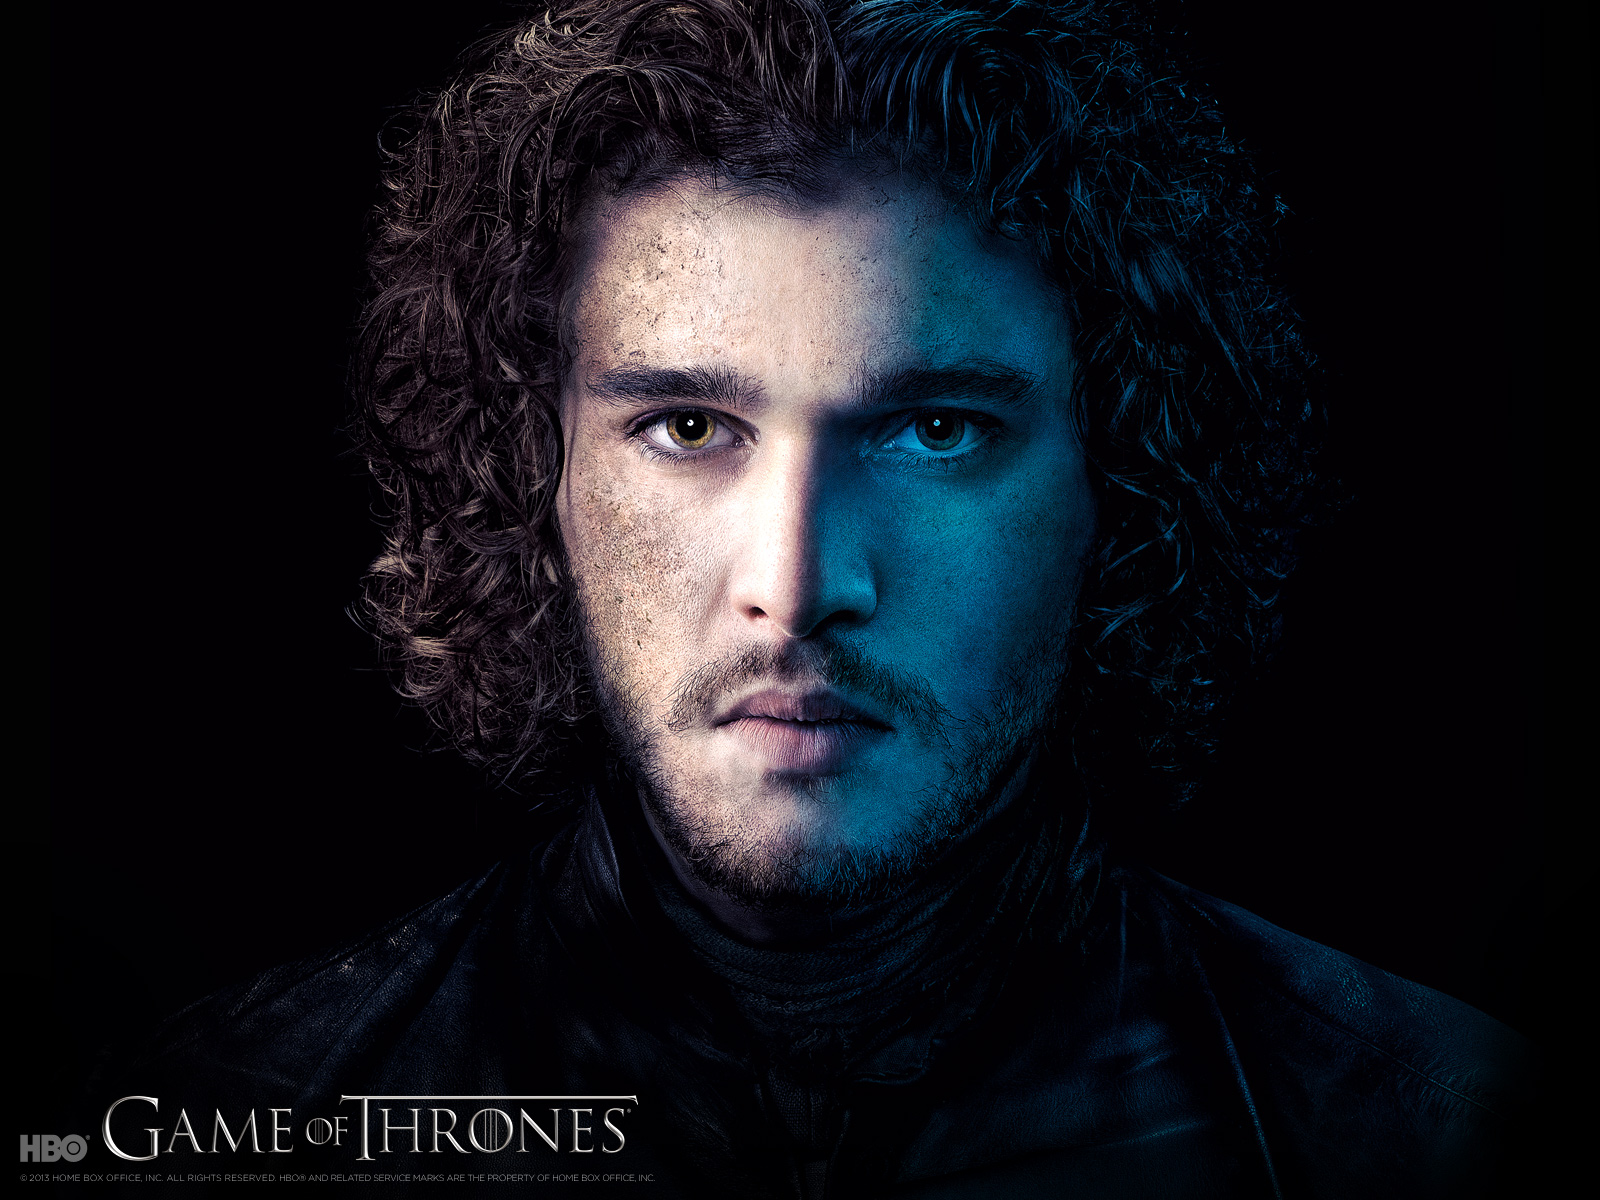 DeNunCianDo   Games Of Thrones Wallpapers HD 1600x1200